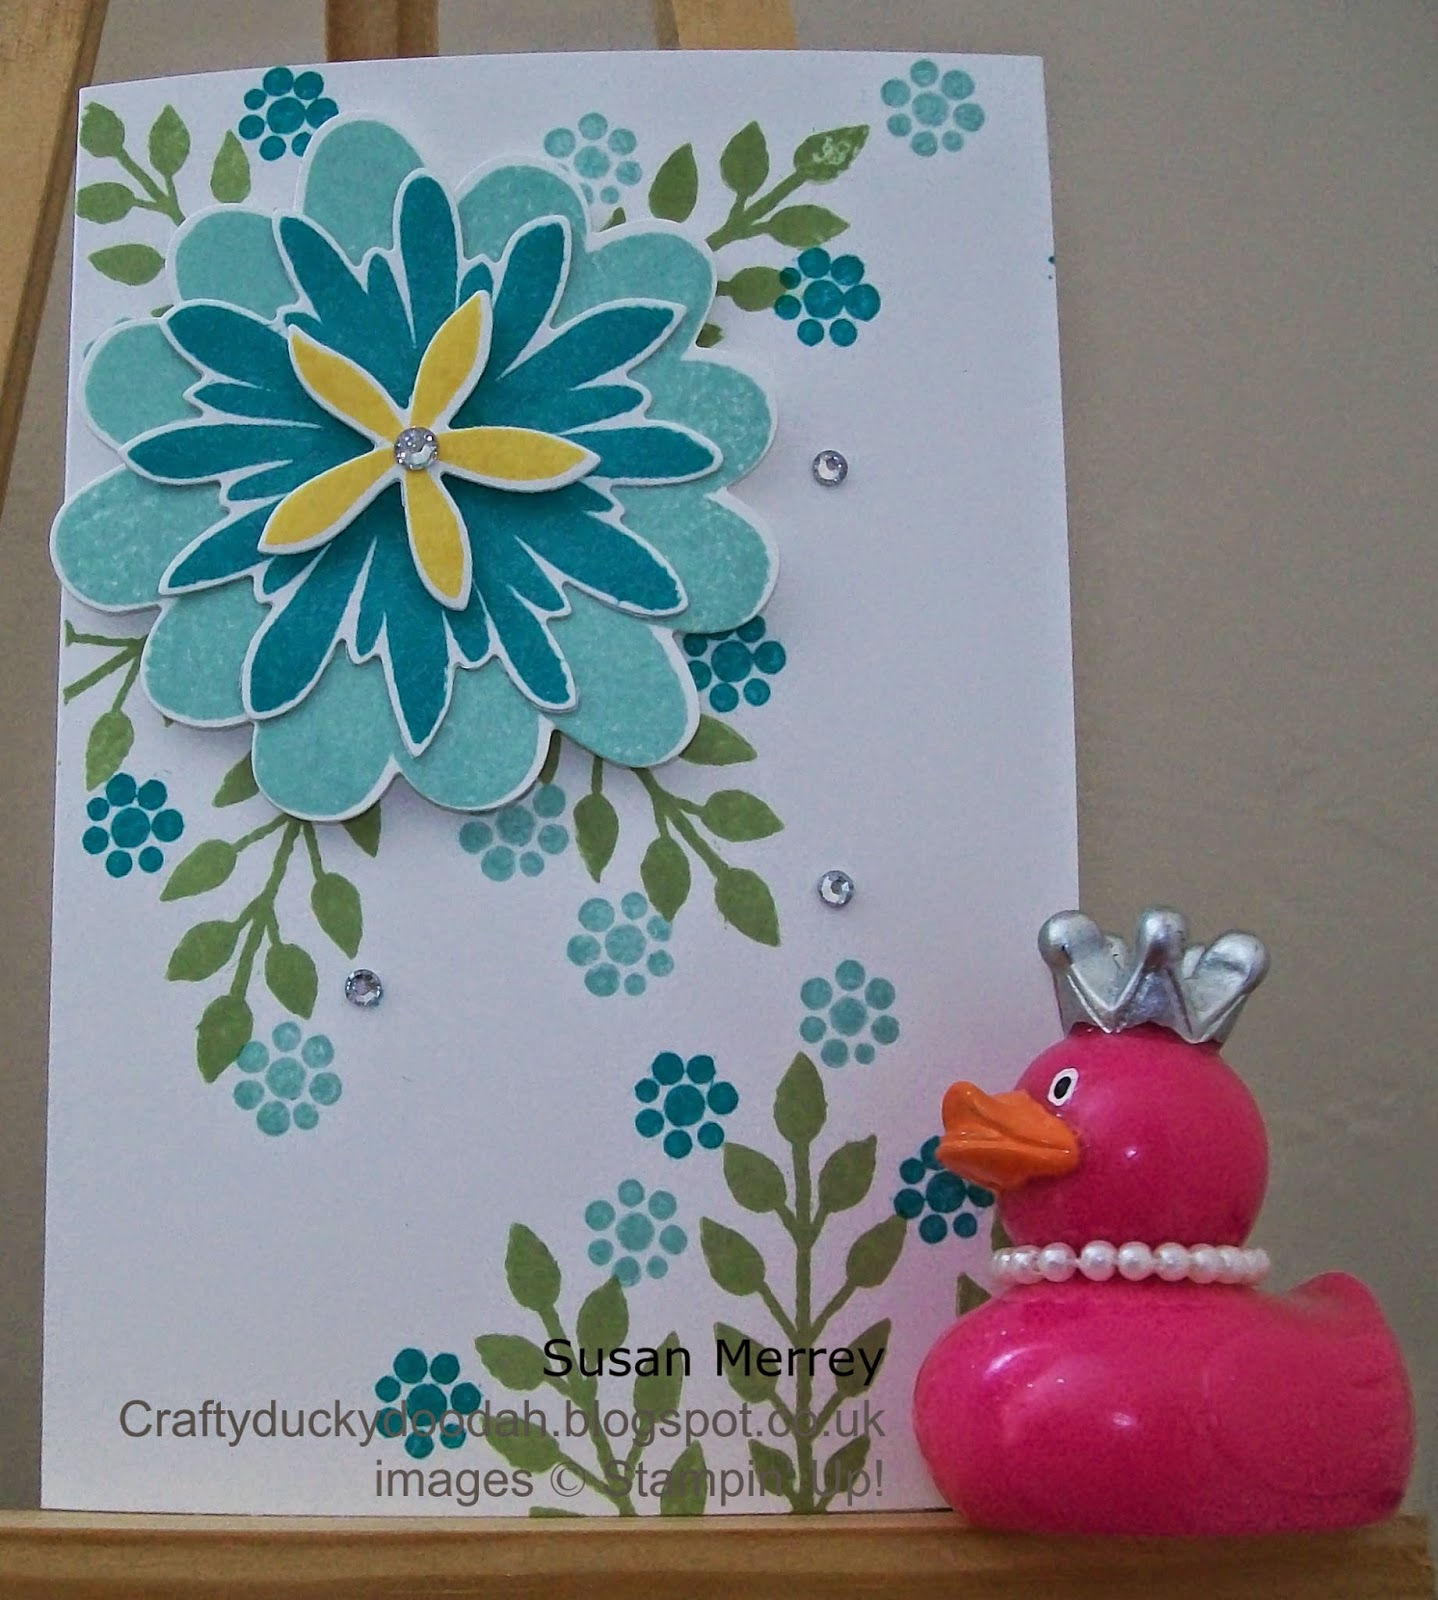 Stampin' Up! Flower Patch, Flower Fair Framelits Dies, Envelope Punch Board, Craftyduckydoodah!, Made by Susan Merrey